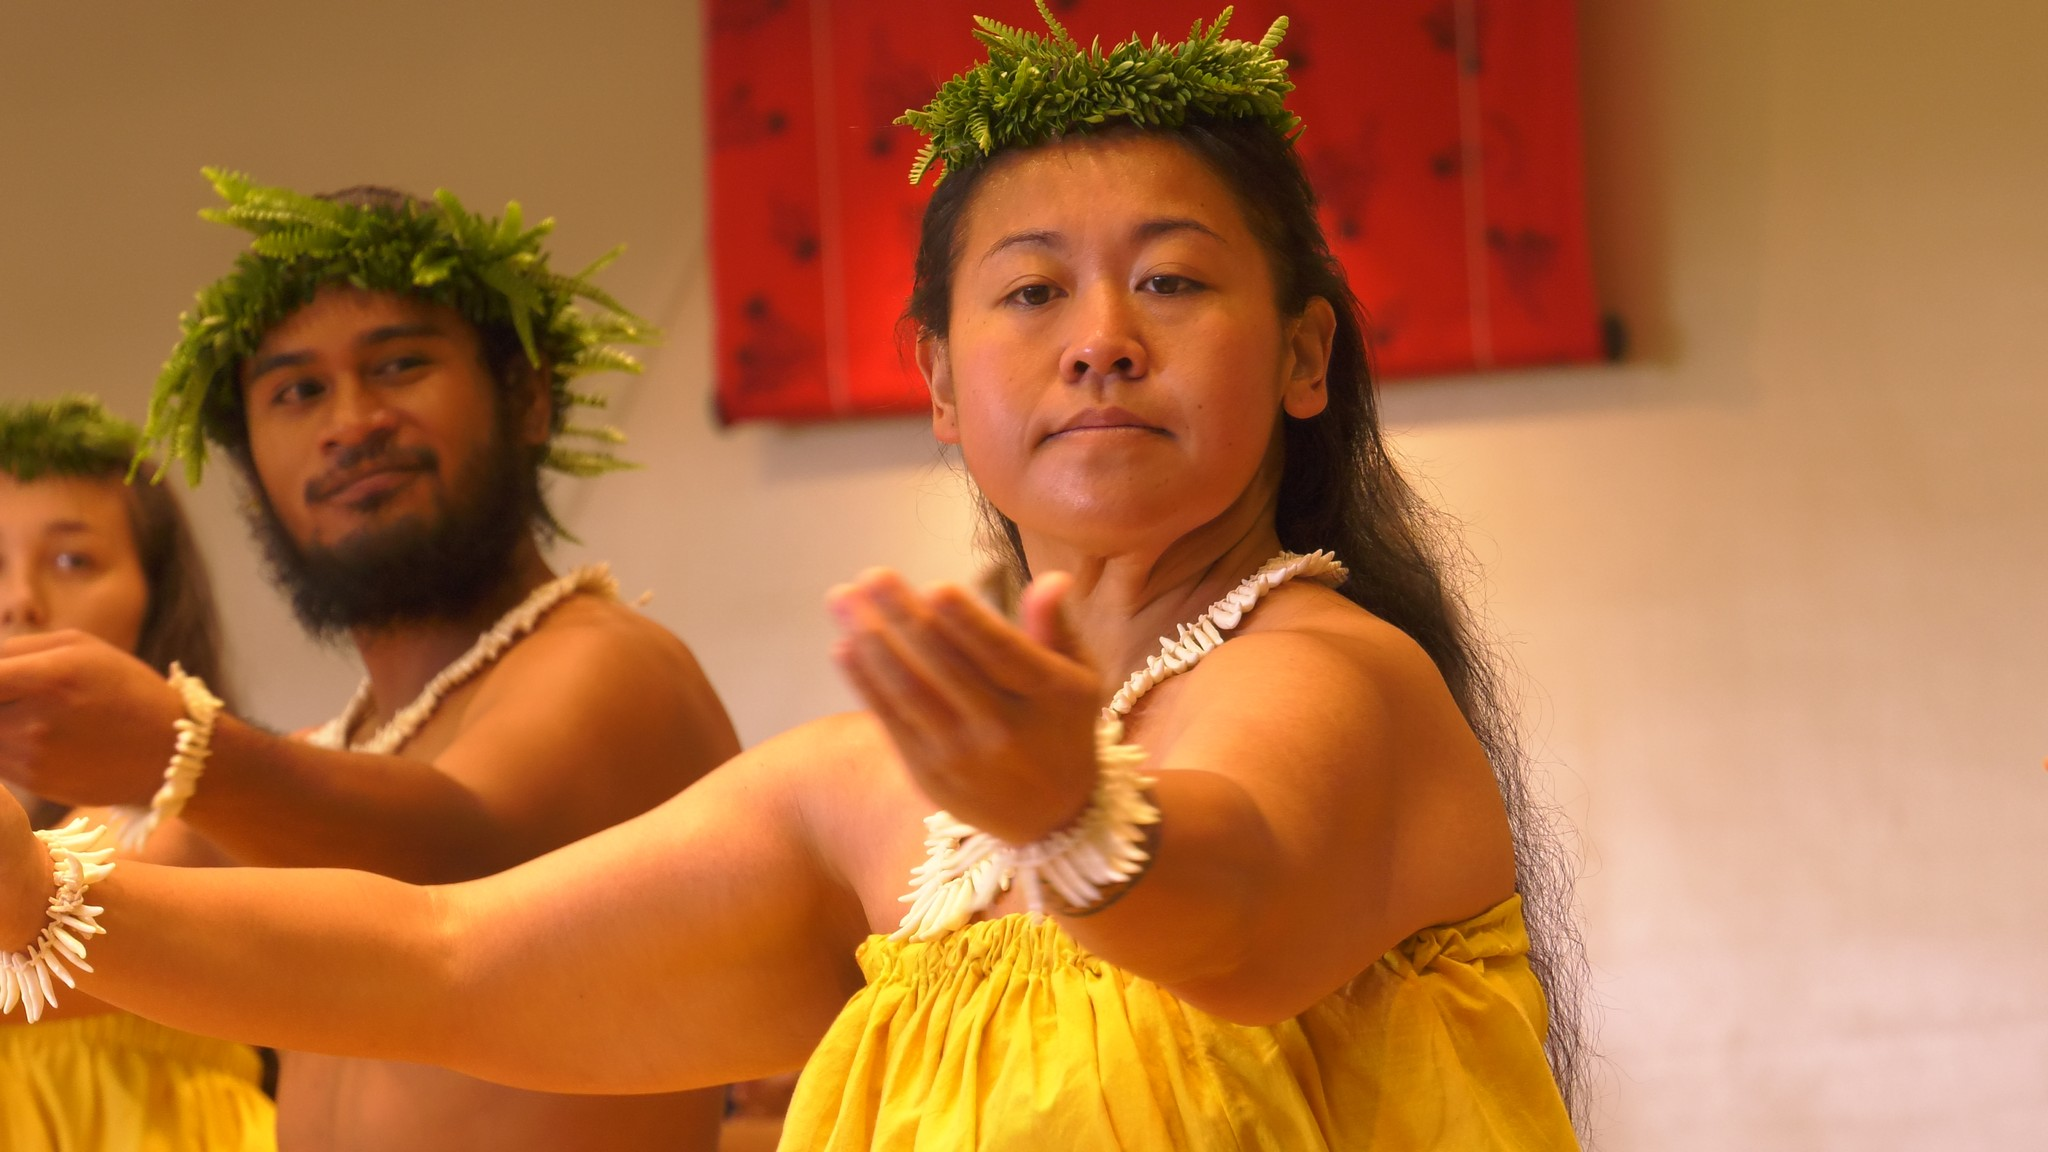 A female dancer in yellow gestures with arms out.